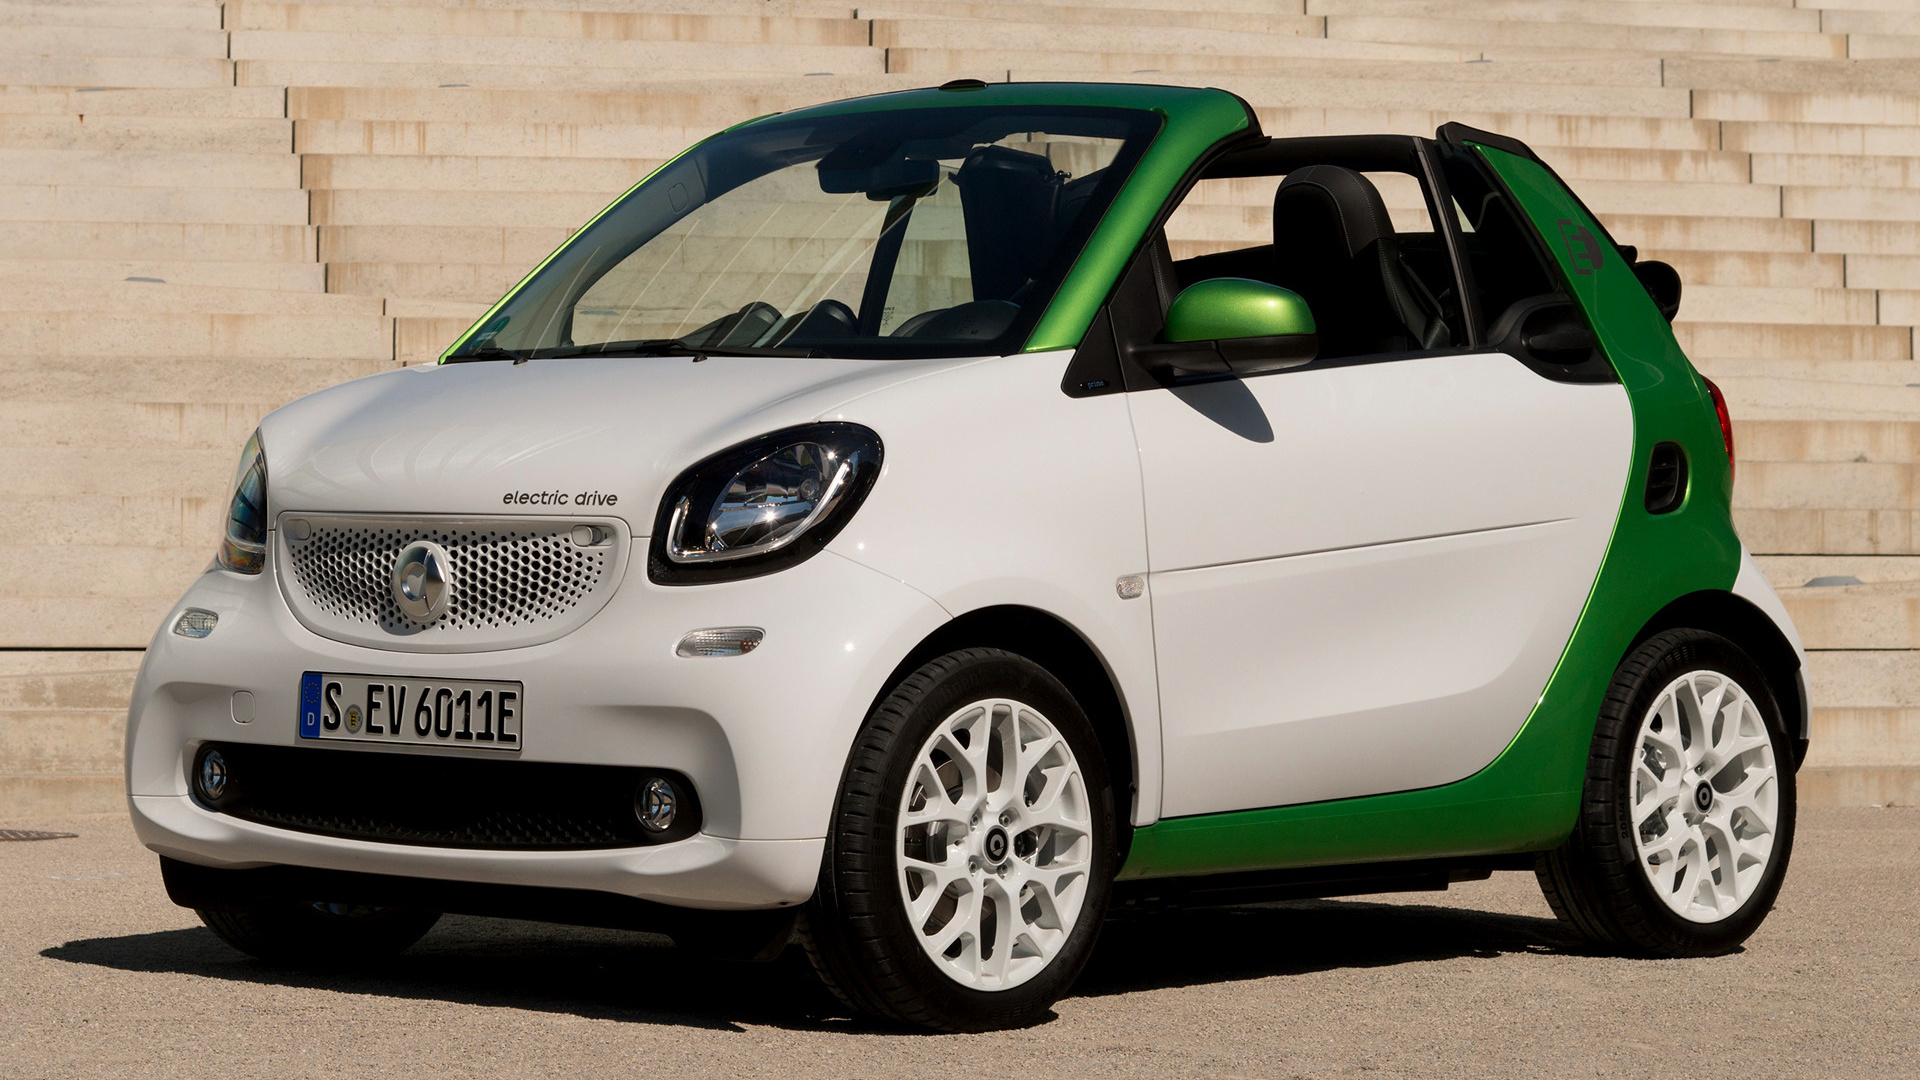 smart fortwo cabrio electric drive 2017 wallpapers and. Black Bedroom Furniture Sets. Home Design Ideas